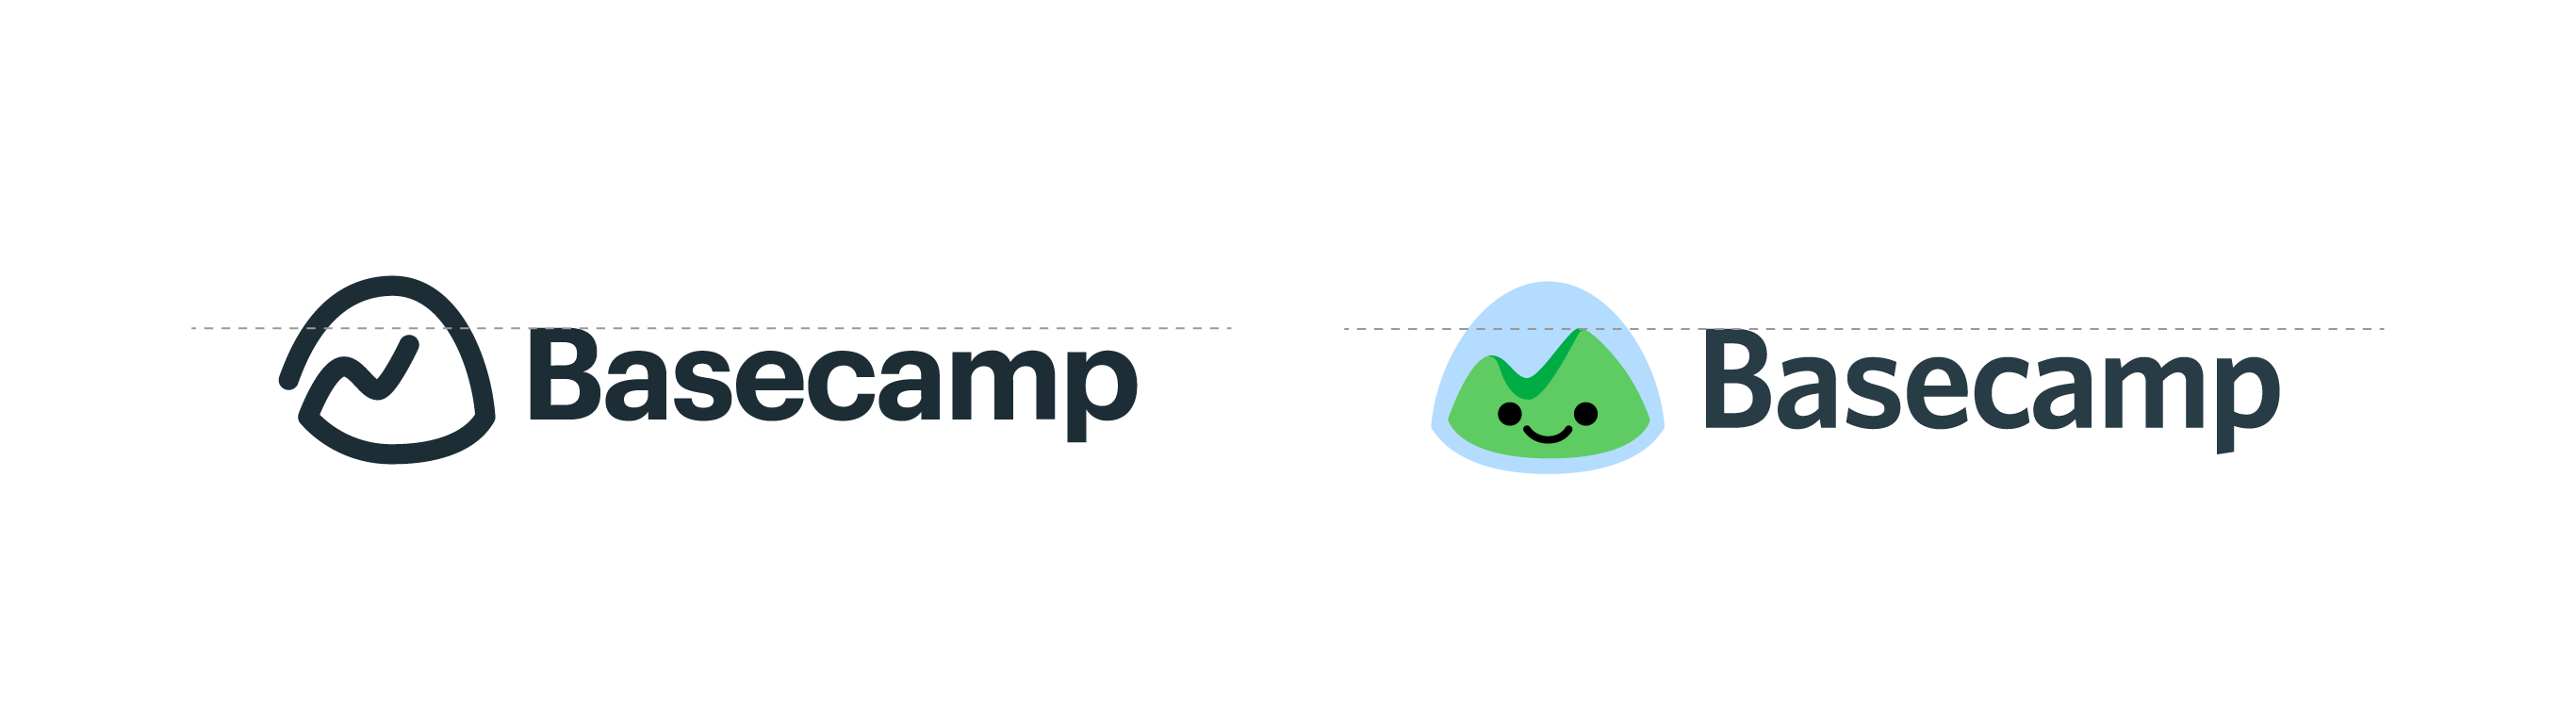 Basecamp logos: horizontal alignment